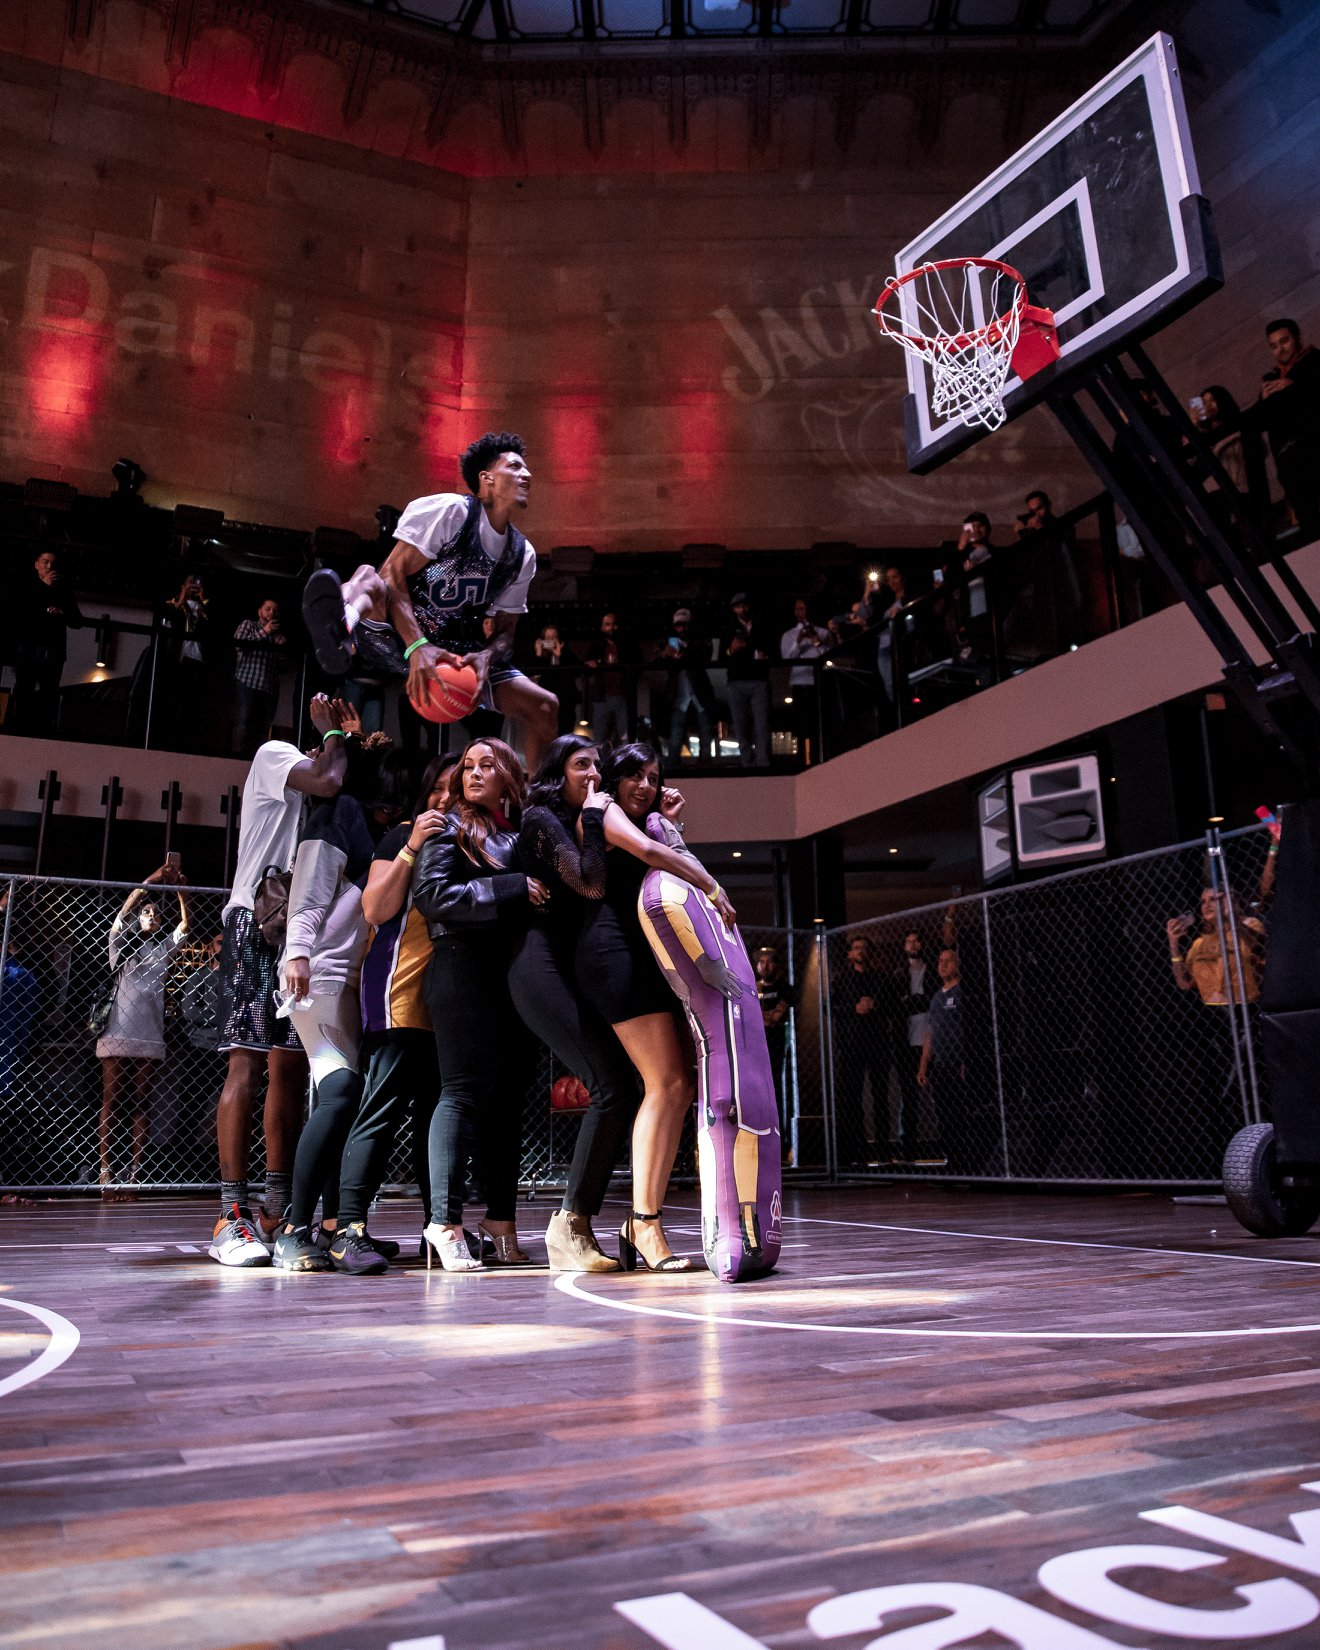 Turning nightclub into a Dunk Fest with Jack Daniels